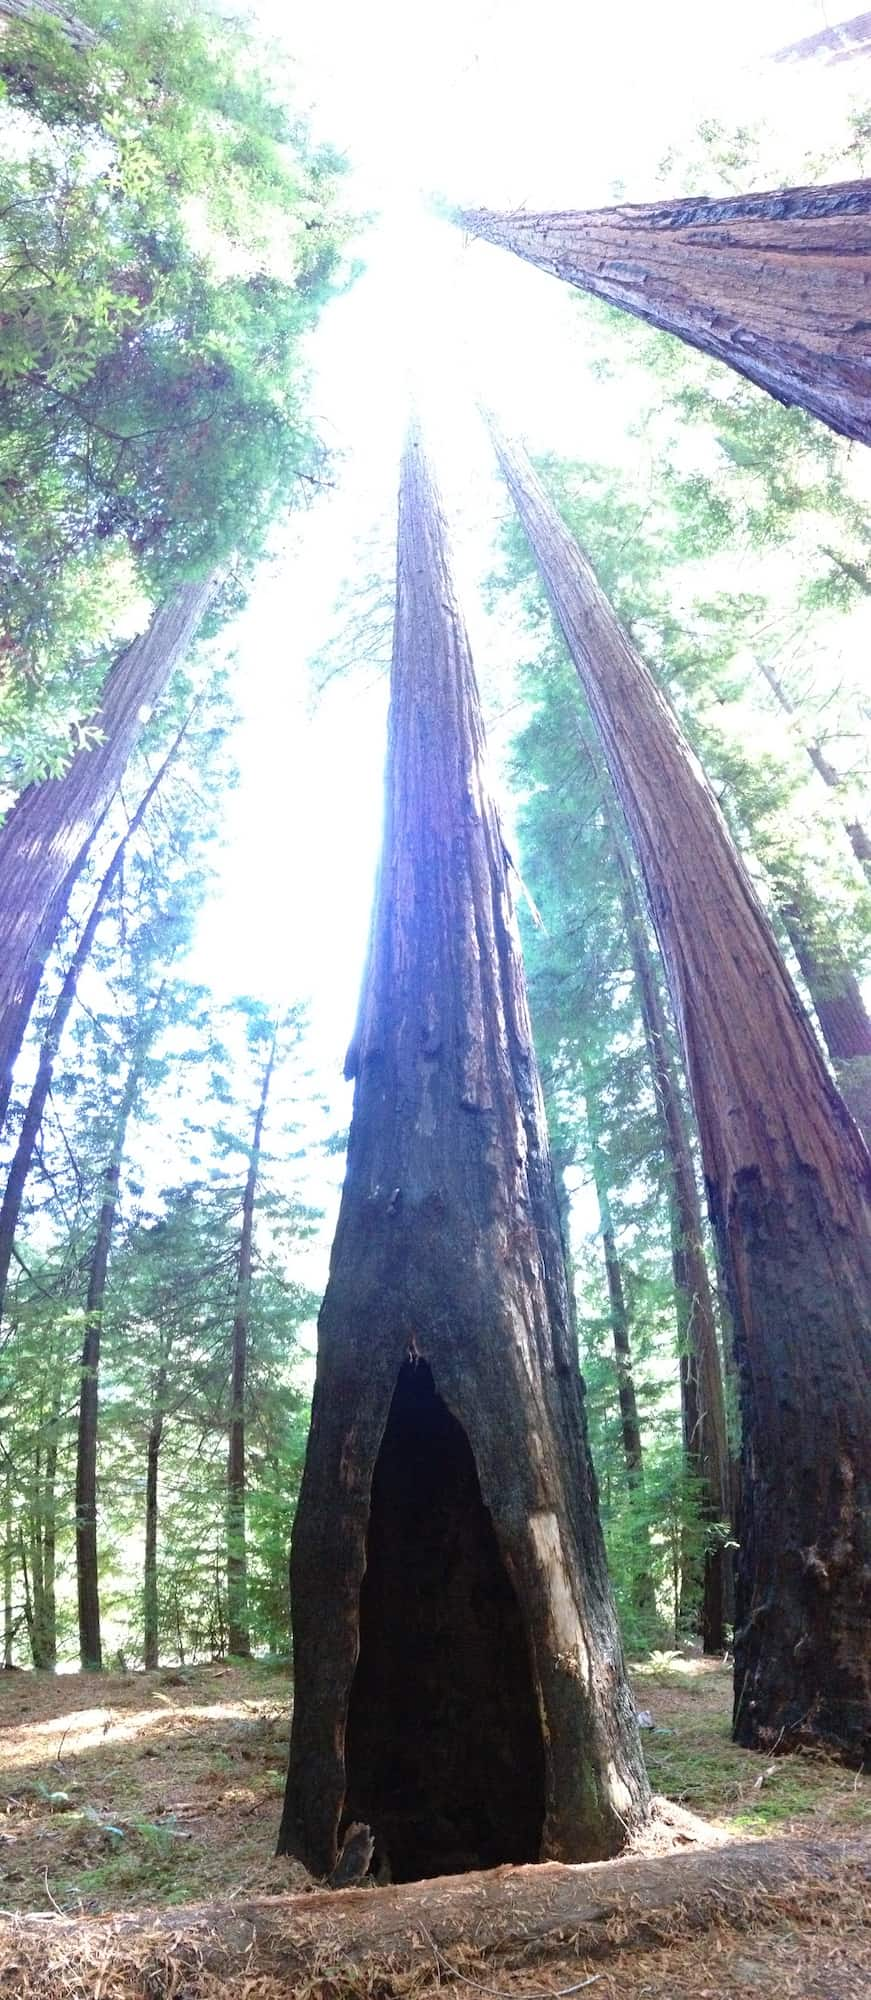 Many old-growth redwoods have well-developed cat faces from repeated fires. Credit: Lenya Quinn-Davidson